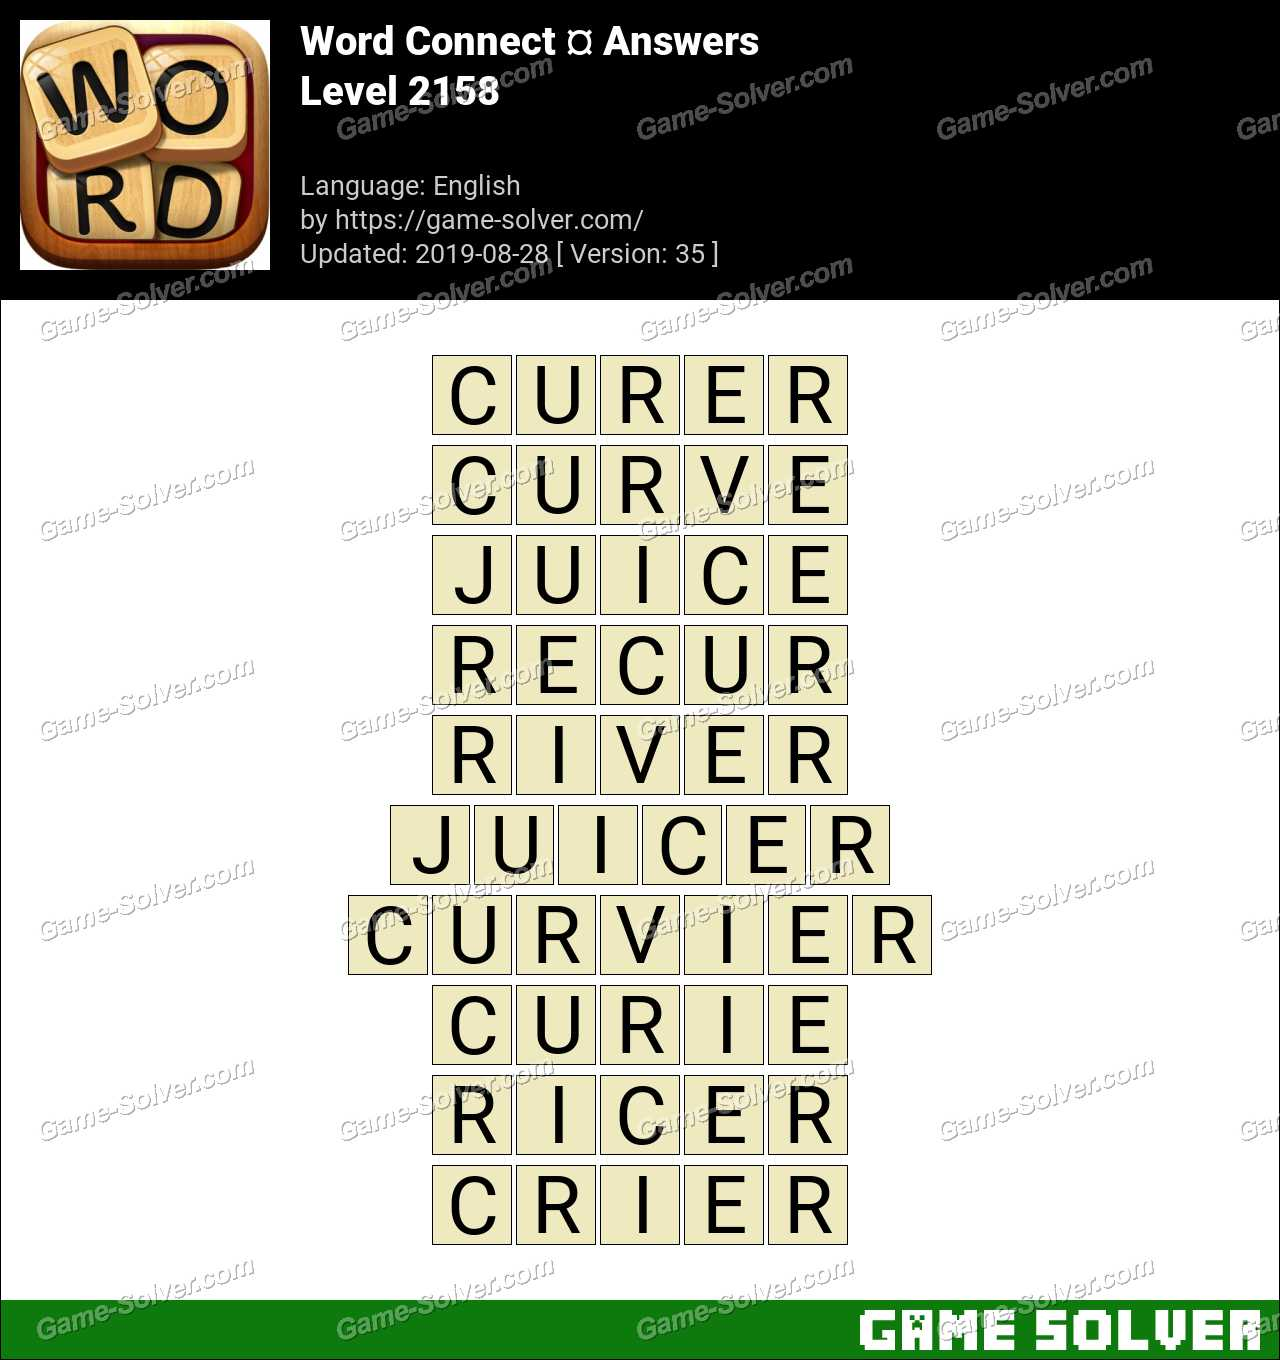 Word Connect Level 2158 Answers